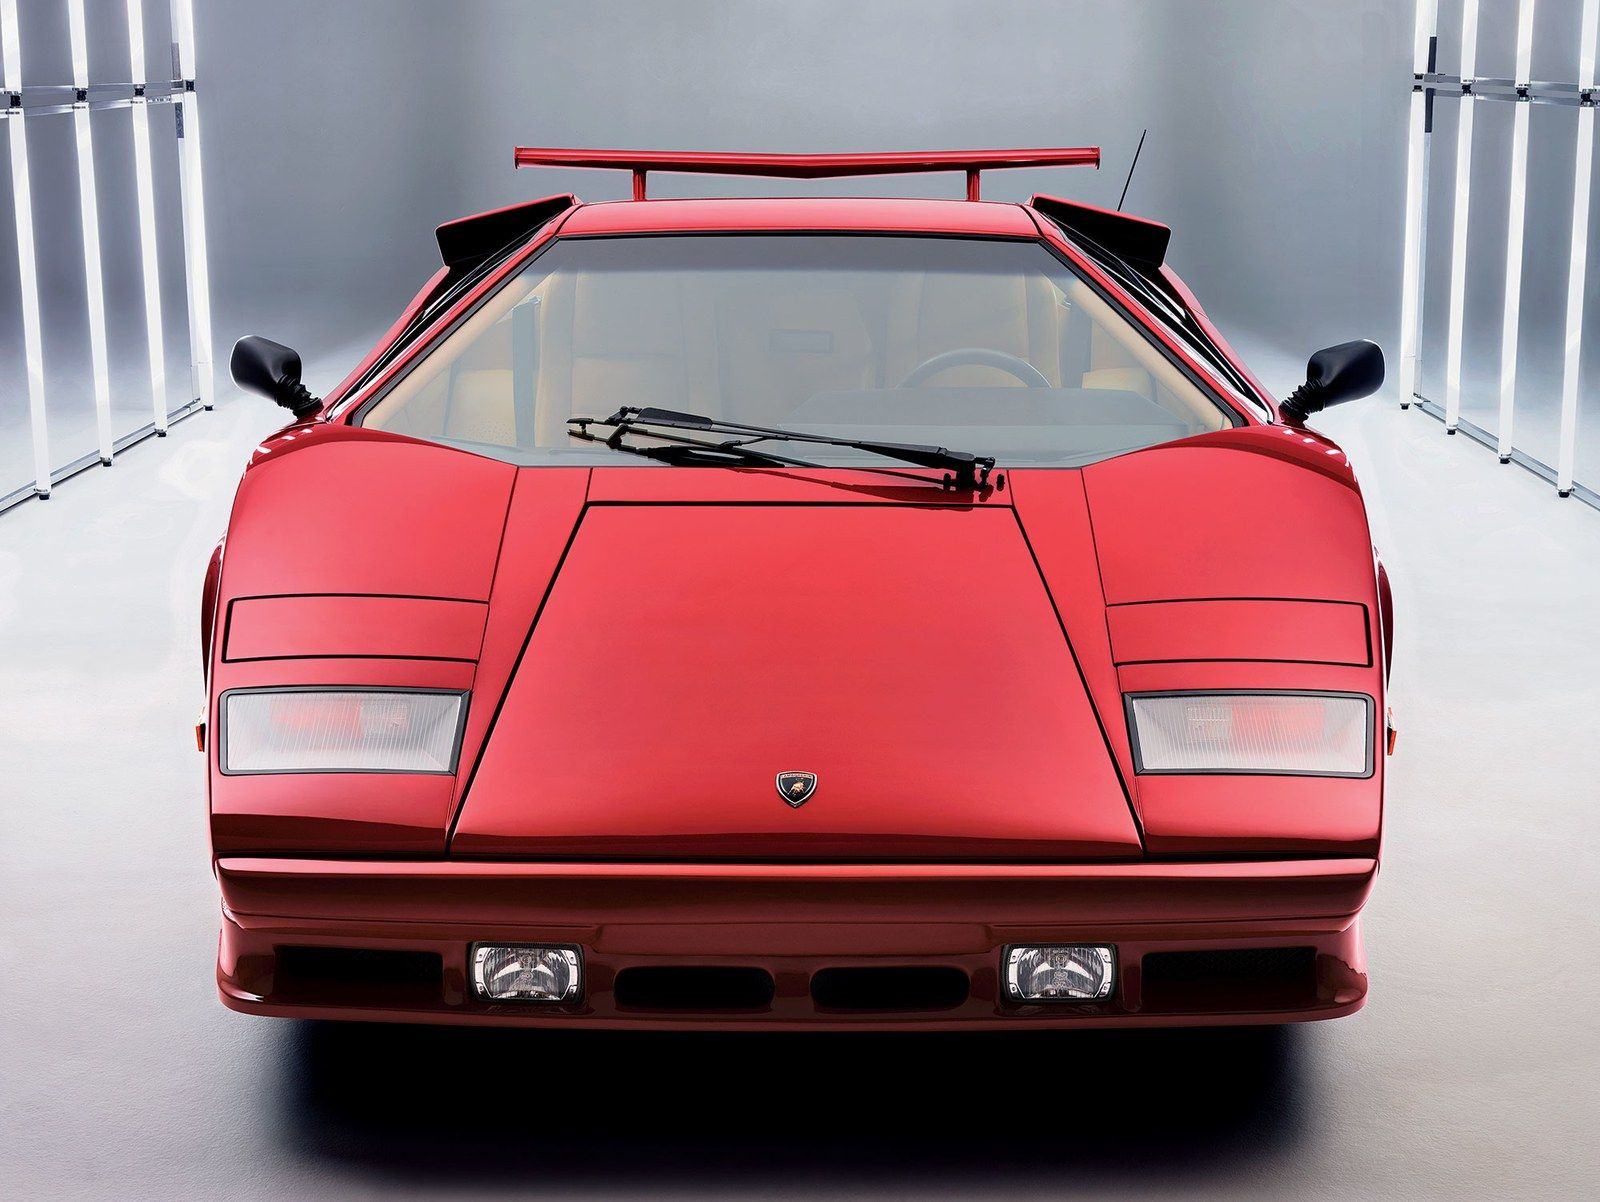 Why We Love Ugly Sports Cars From The S And S Now More - Cool cars from the 80s and 90s